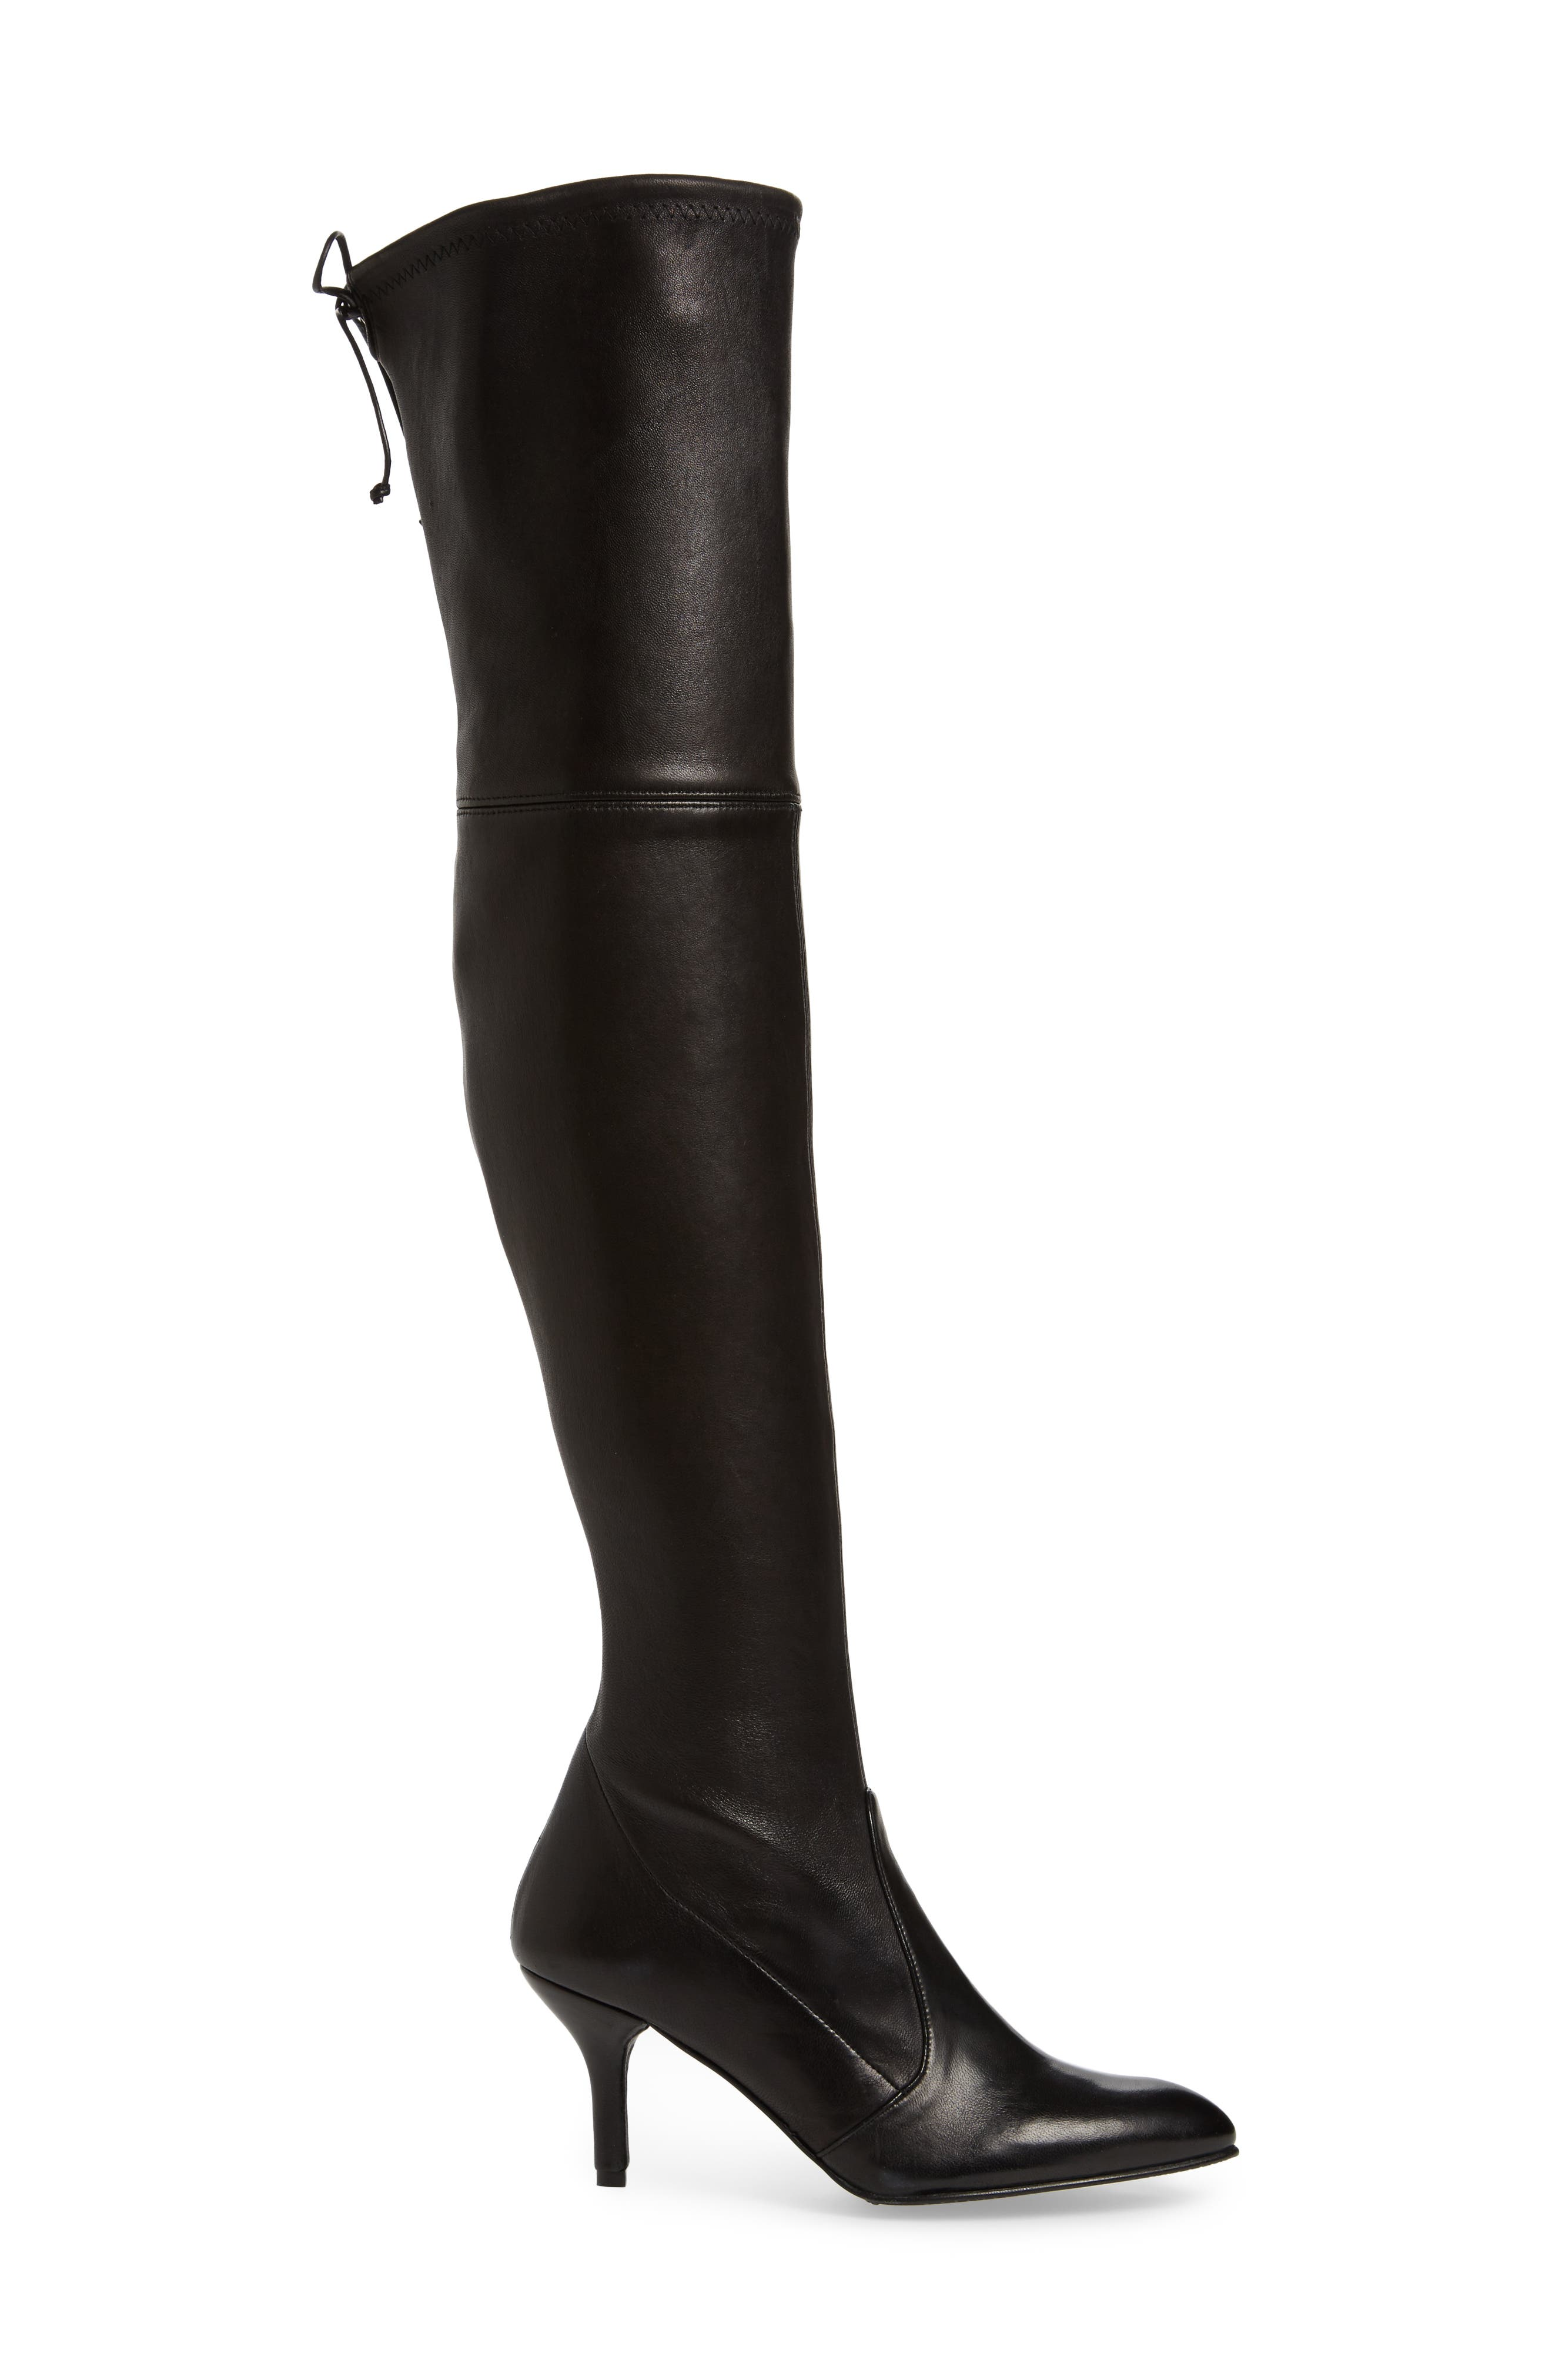 Tiemodel Over the Knee Stretch Boot,                             Alternate thumbnail 3, color,                             002